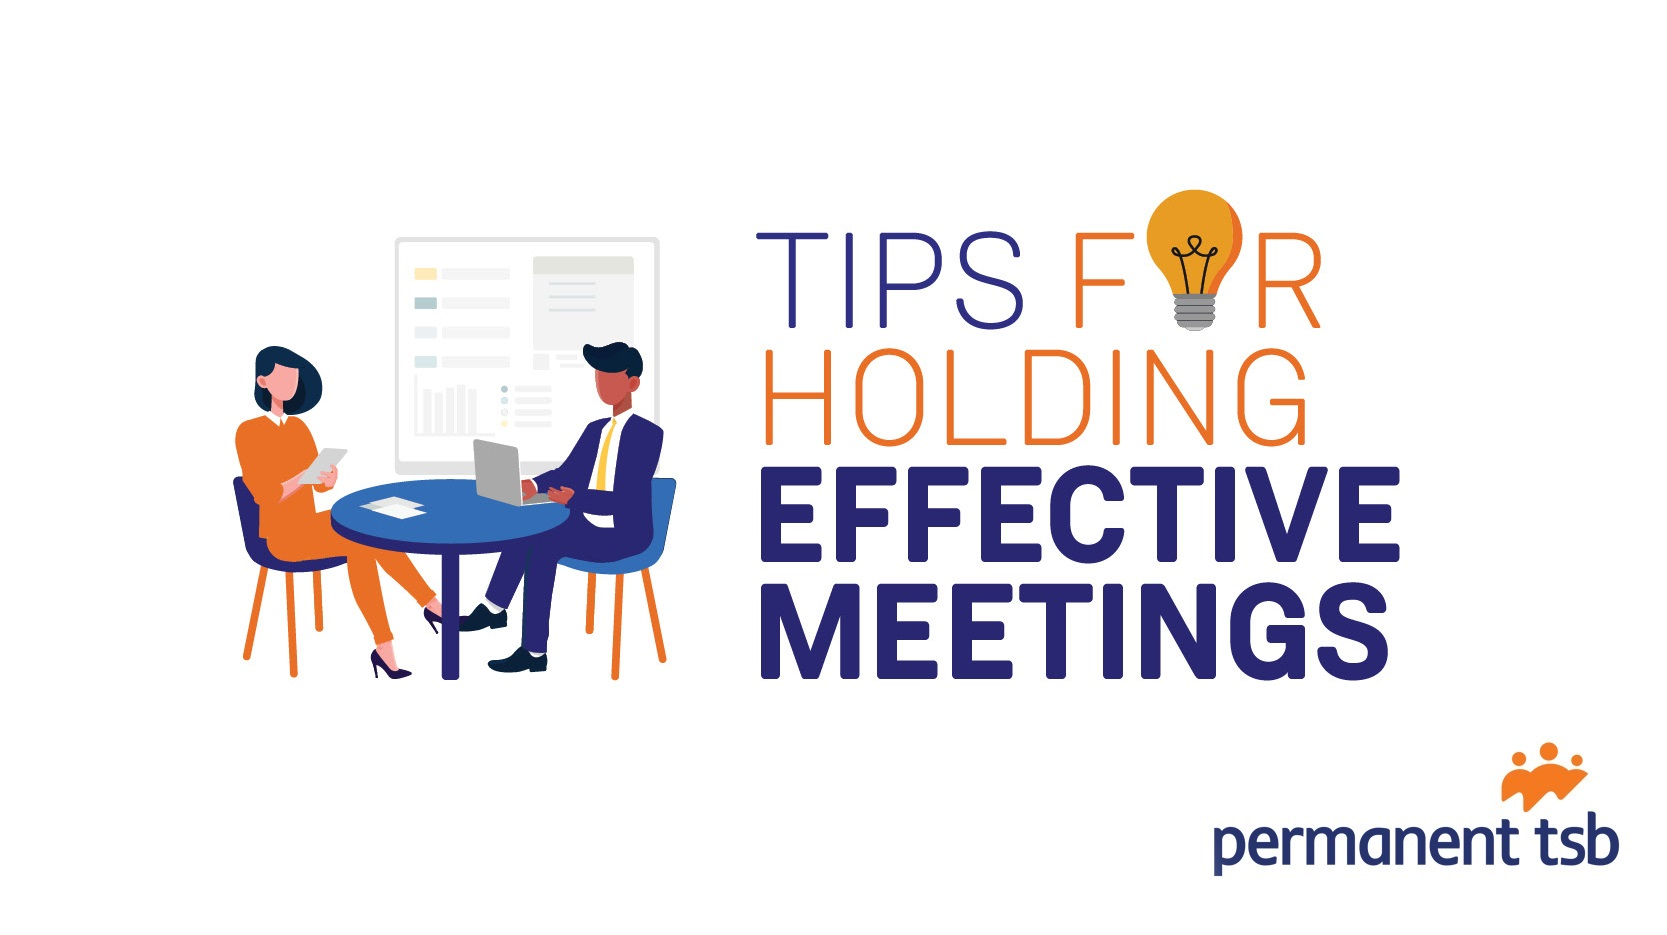 Tips for Holding Effective Meetings